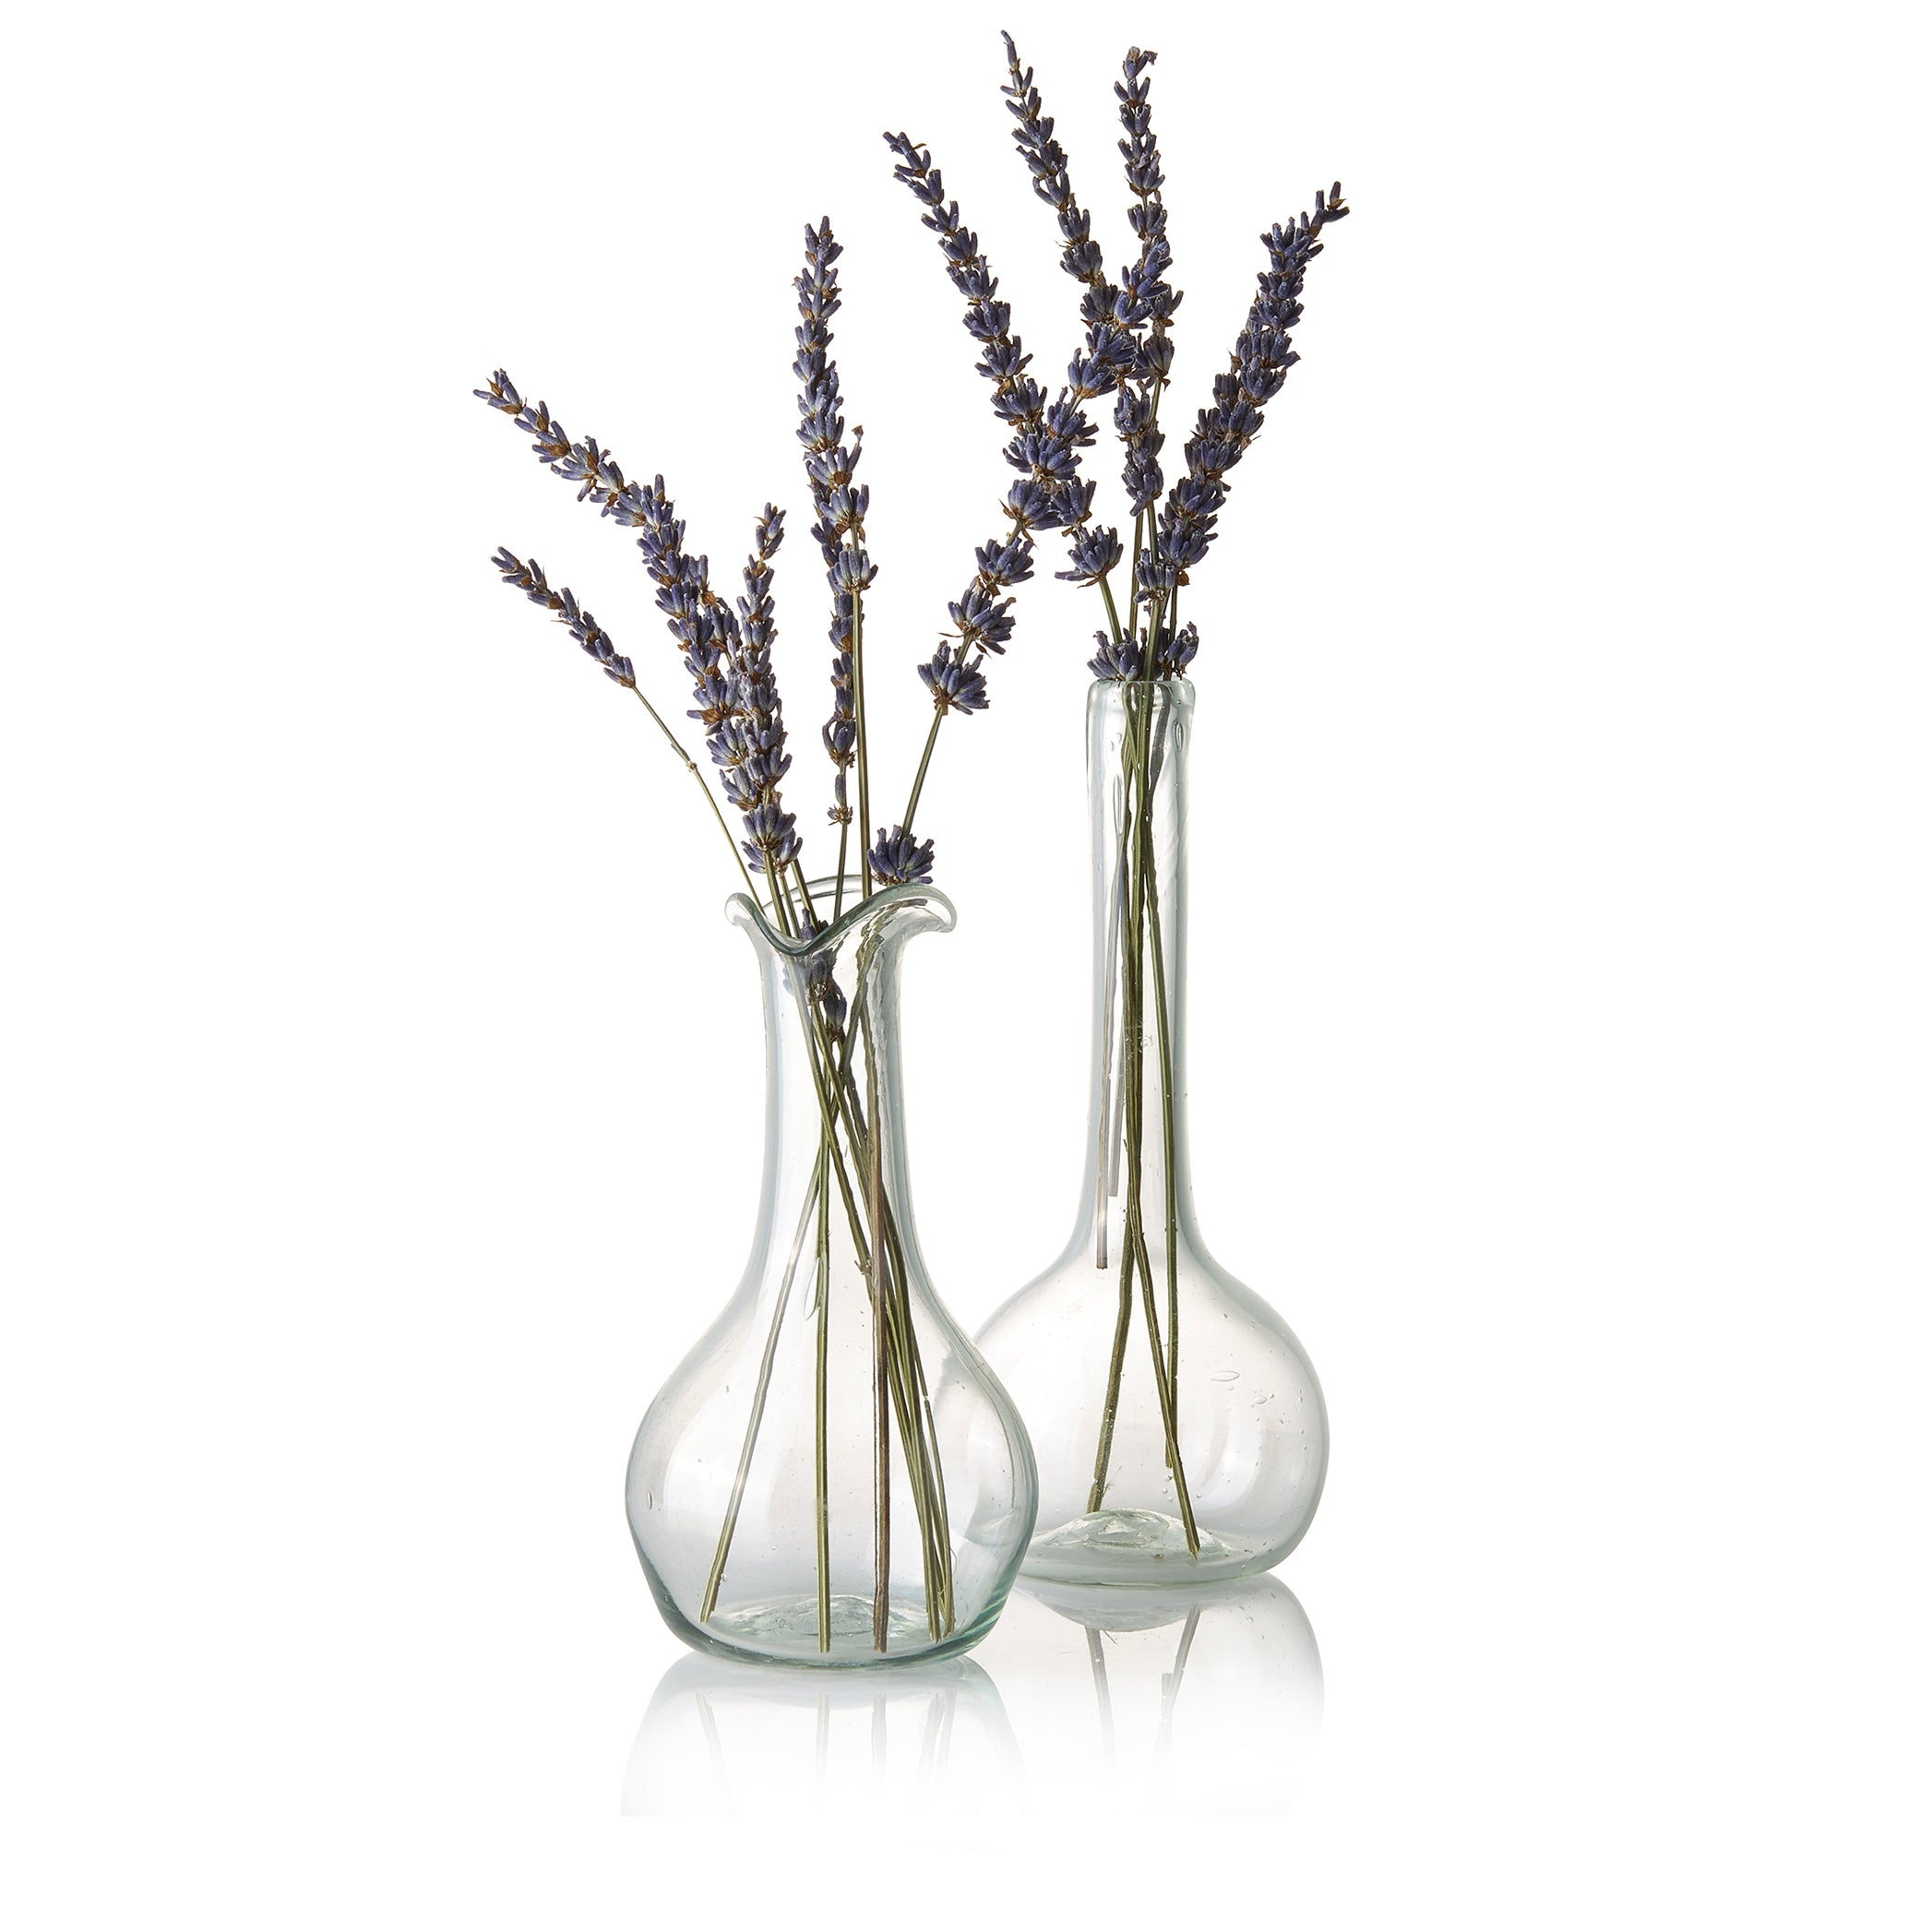 Handblown Glass Single Flower Vase with Long Neck